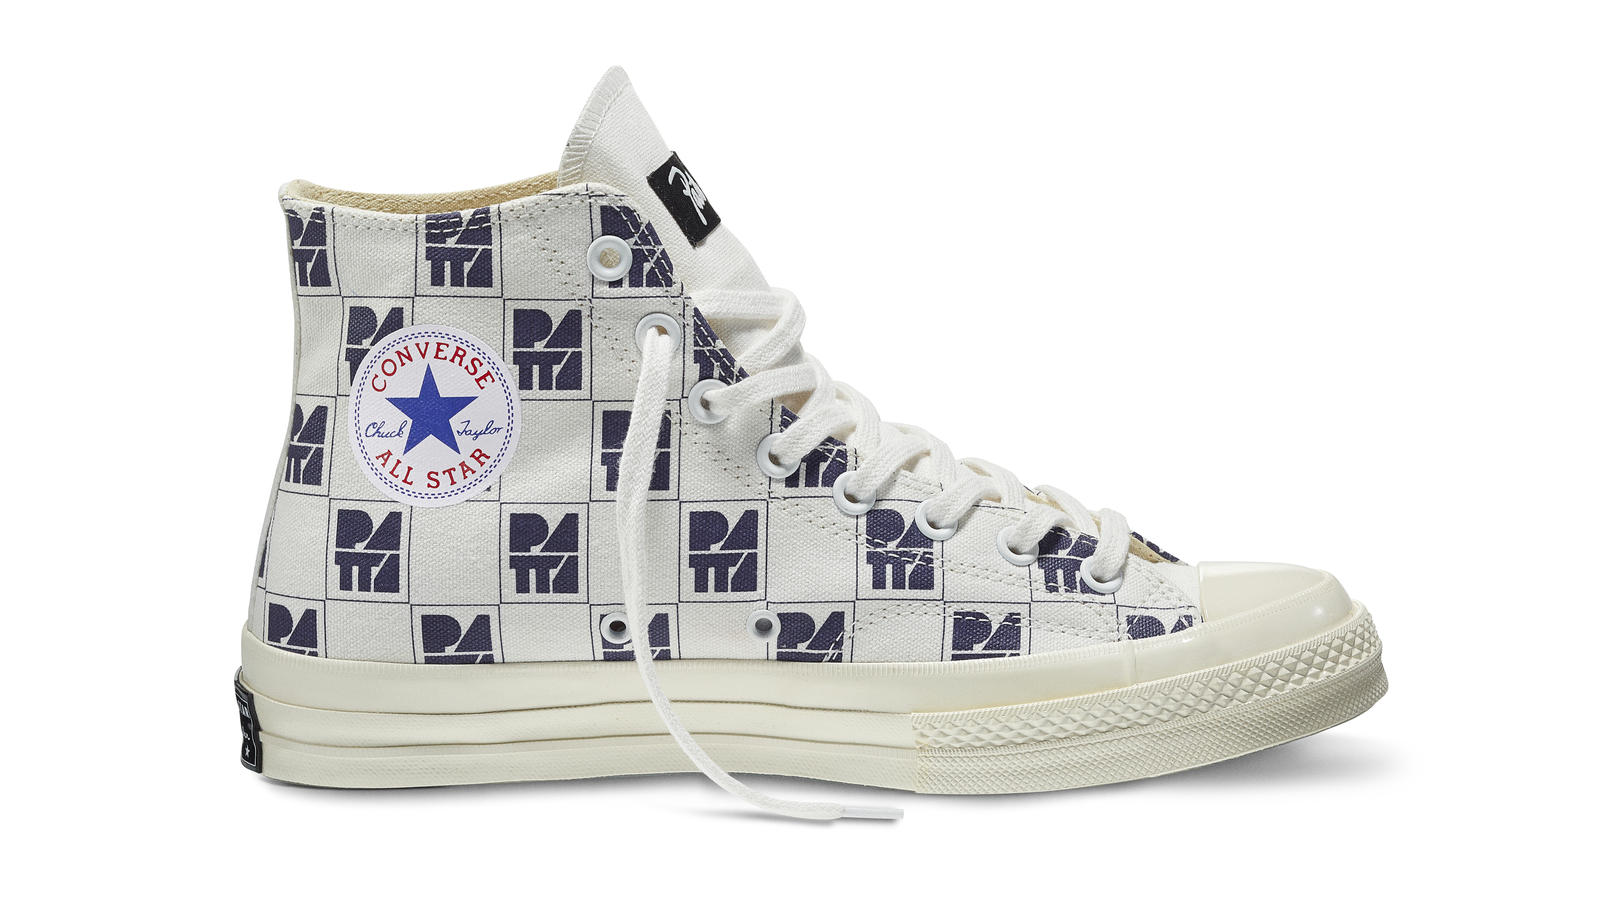 Converse All Star Ct70 Patta10 White Navy Original